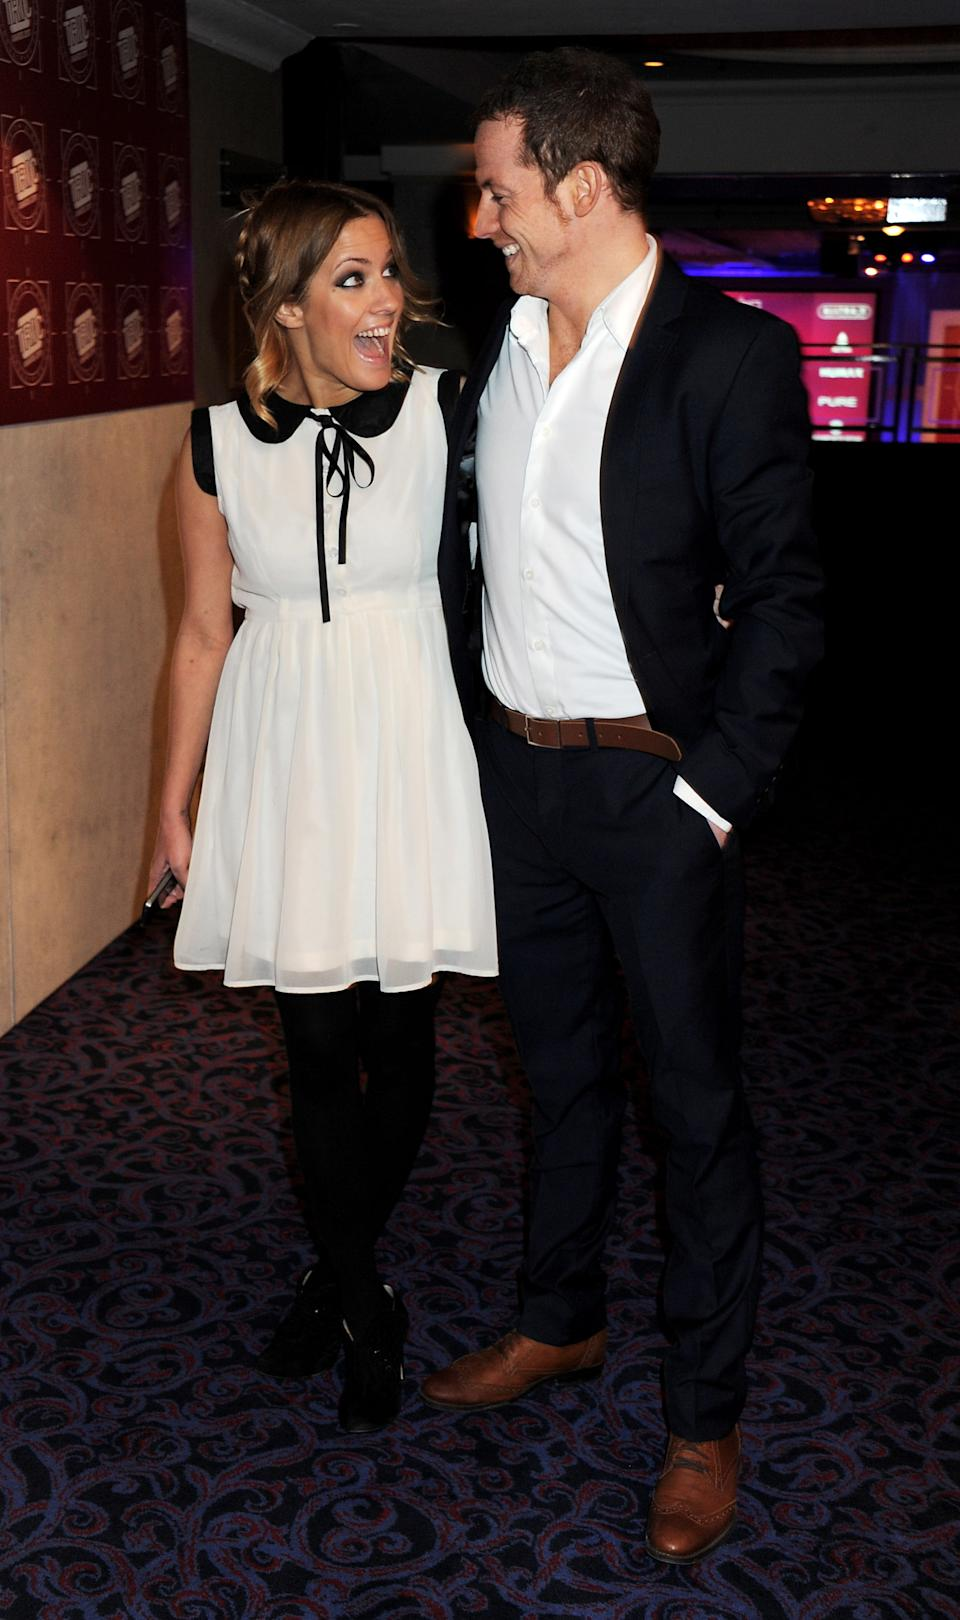 LONDON, ENGLAND - MARCH 08:  (EMBARGOED FOR PUBLICATION IN UK TABLOID NEWSPAPERS UNTIL 48 HOURS AFTER CREATE DATE AND TIME. MANDATORY CREDIT PHOTO BY DAVE M. BENETT/GETTY IMAGES REQUIRED) Presenter Caroline Flack (L) and actor Joe Swash attend the TRIC Television and Radio Industries Club Awards at Grosvenor House on March 8, 2011 in London, England.  (Photo by Dave M. Benett/Getty Images)